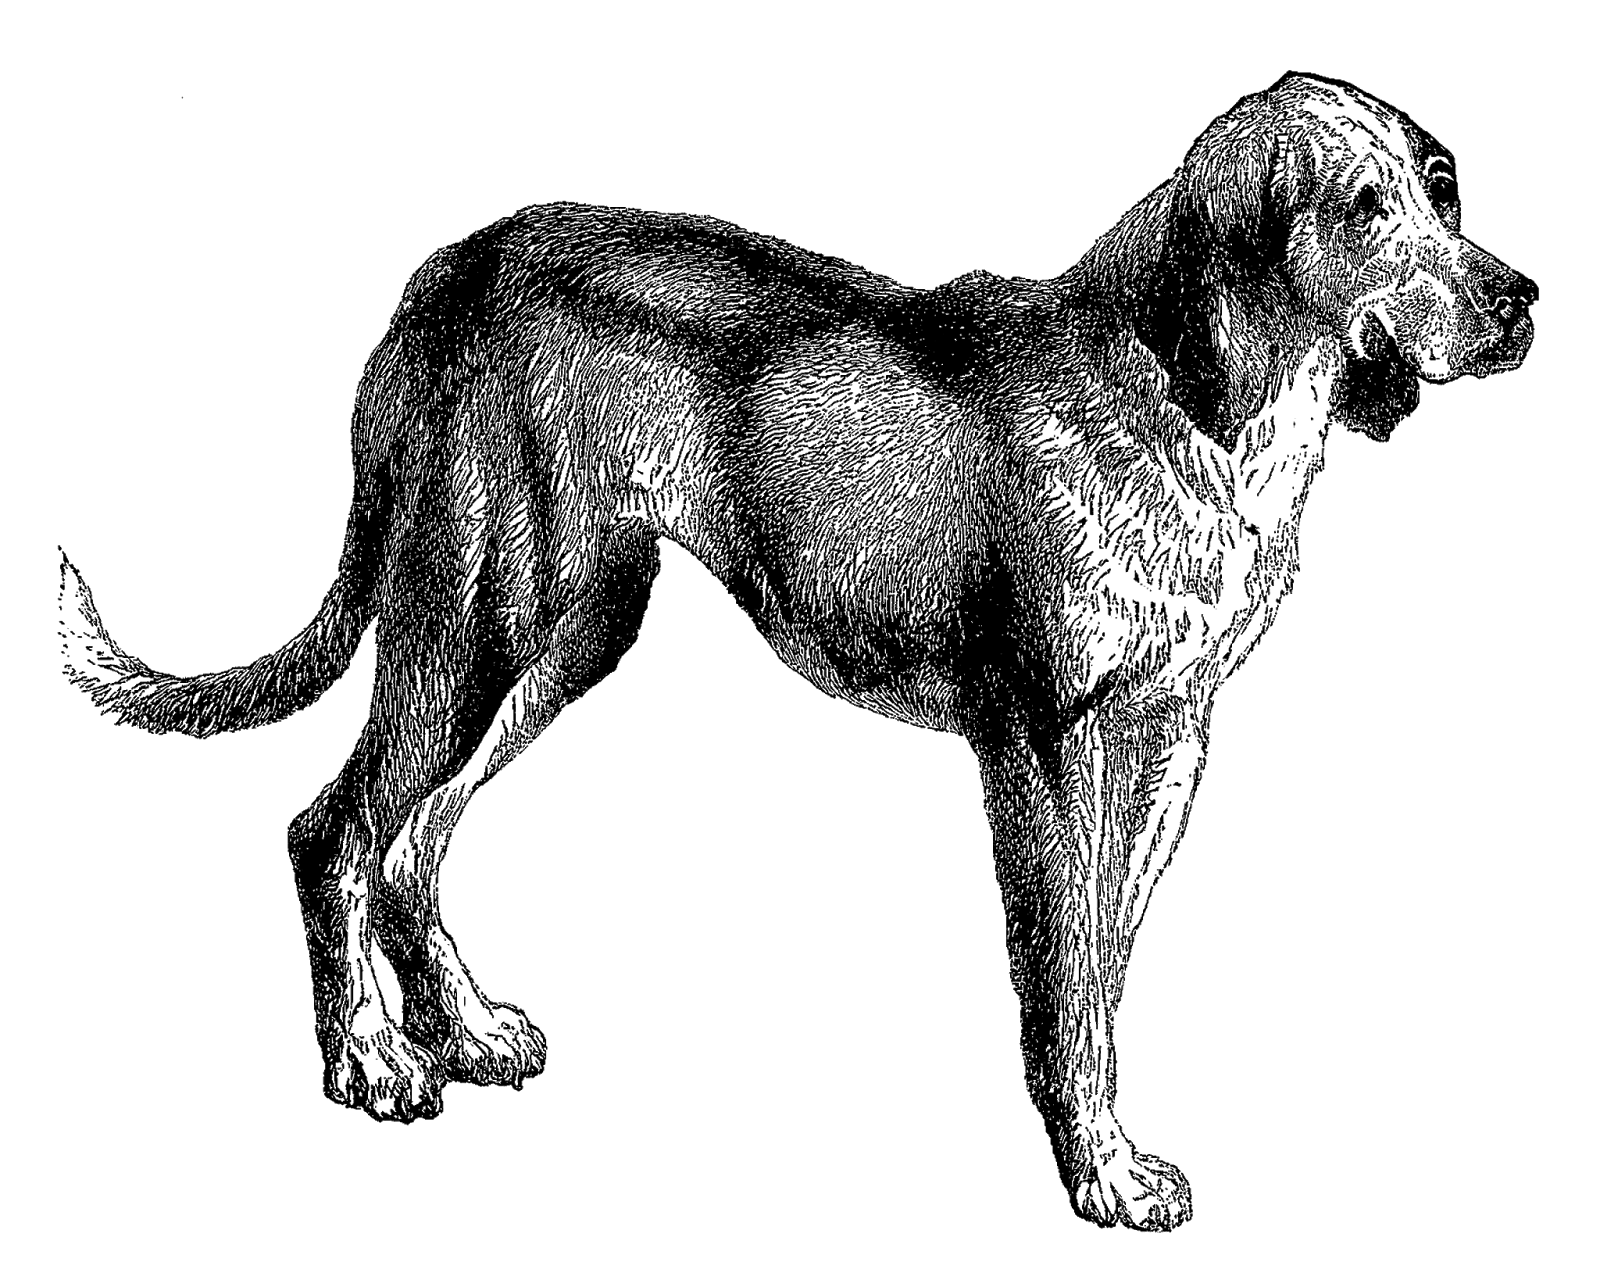 Portuguese water dog clipart image library download Bloodhound Clipart Image Group (86+) image library download